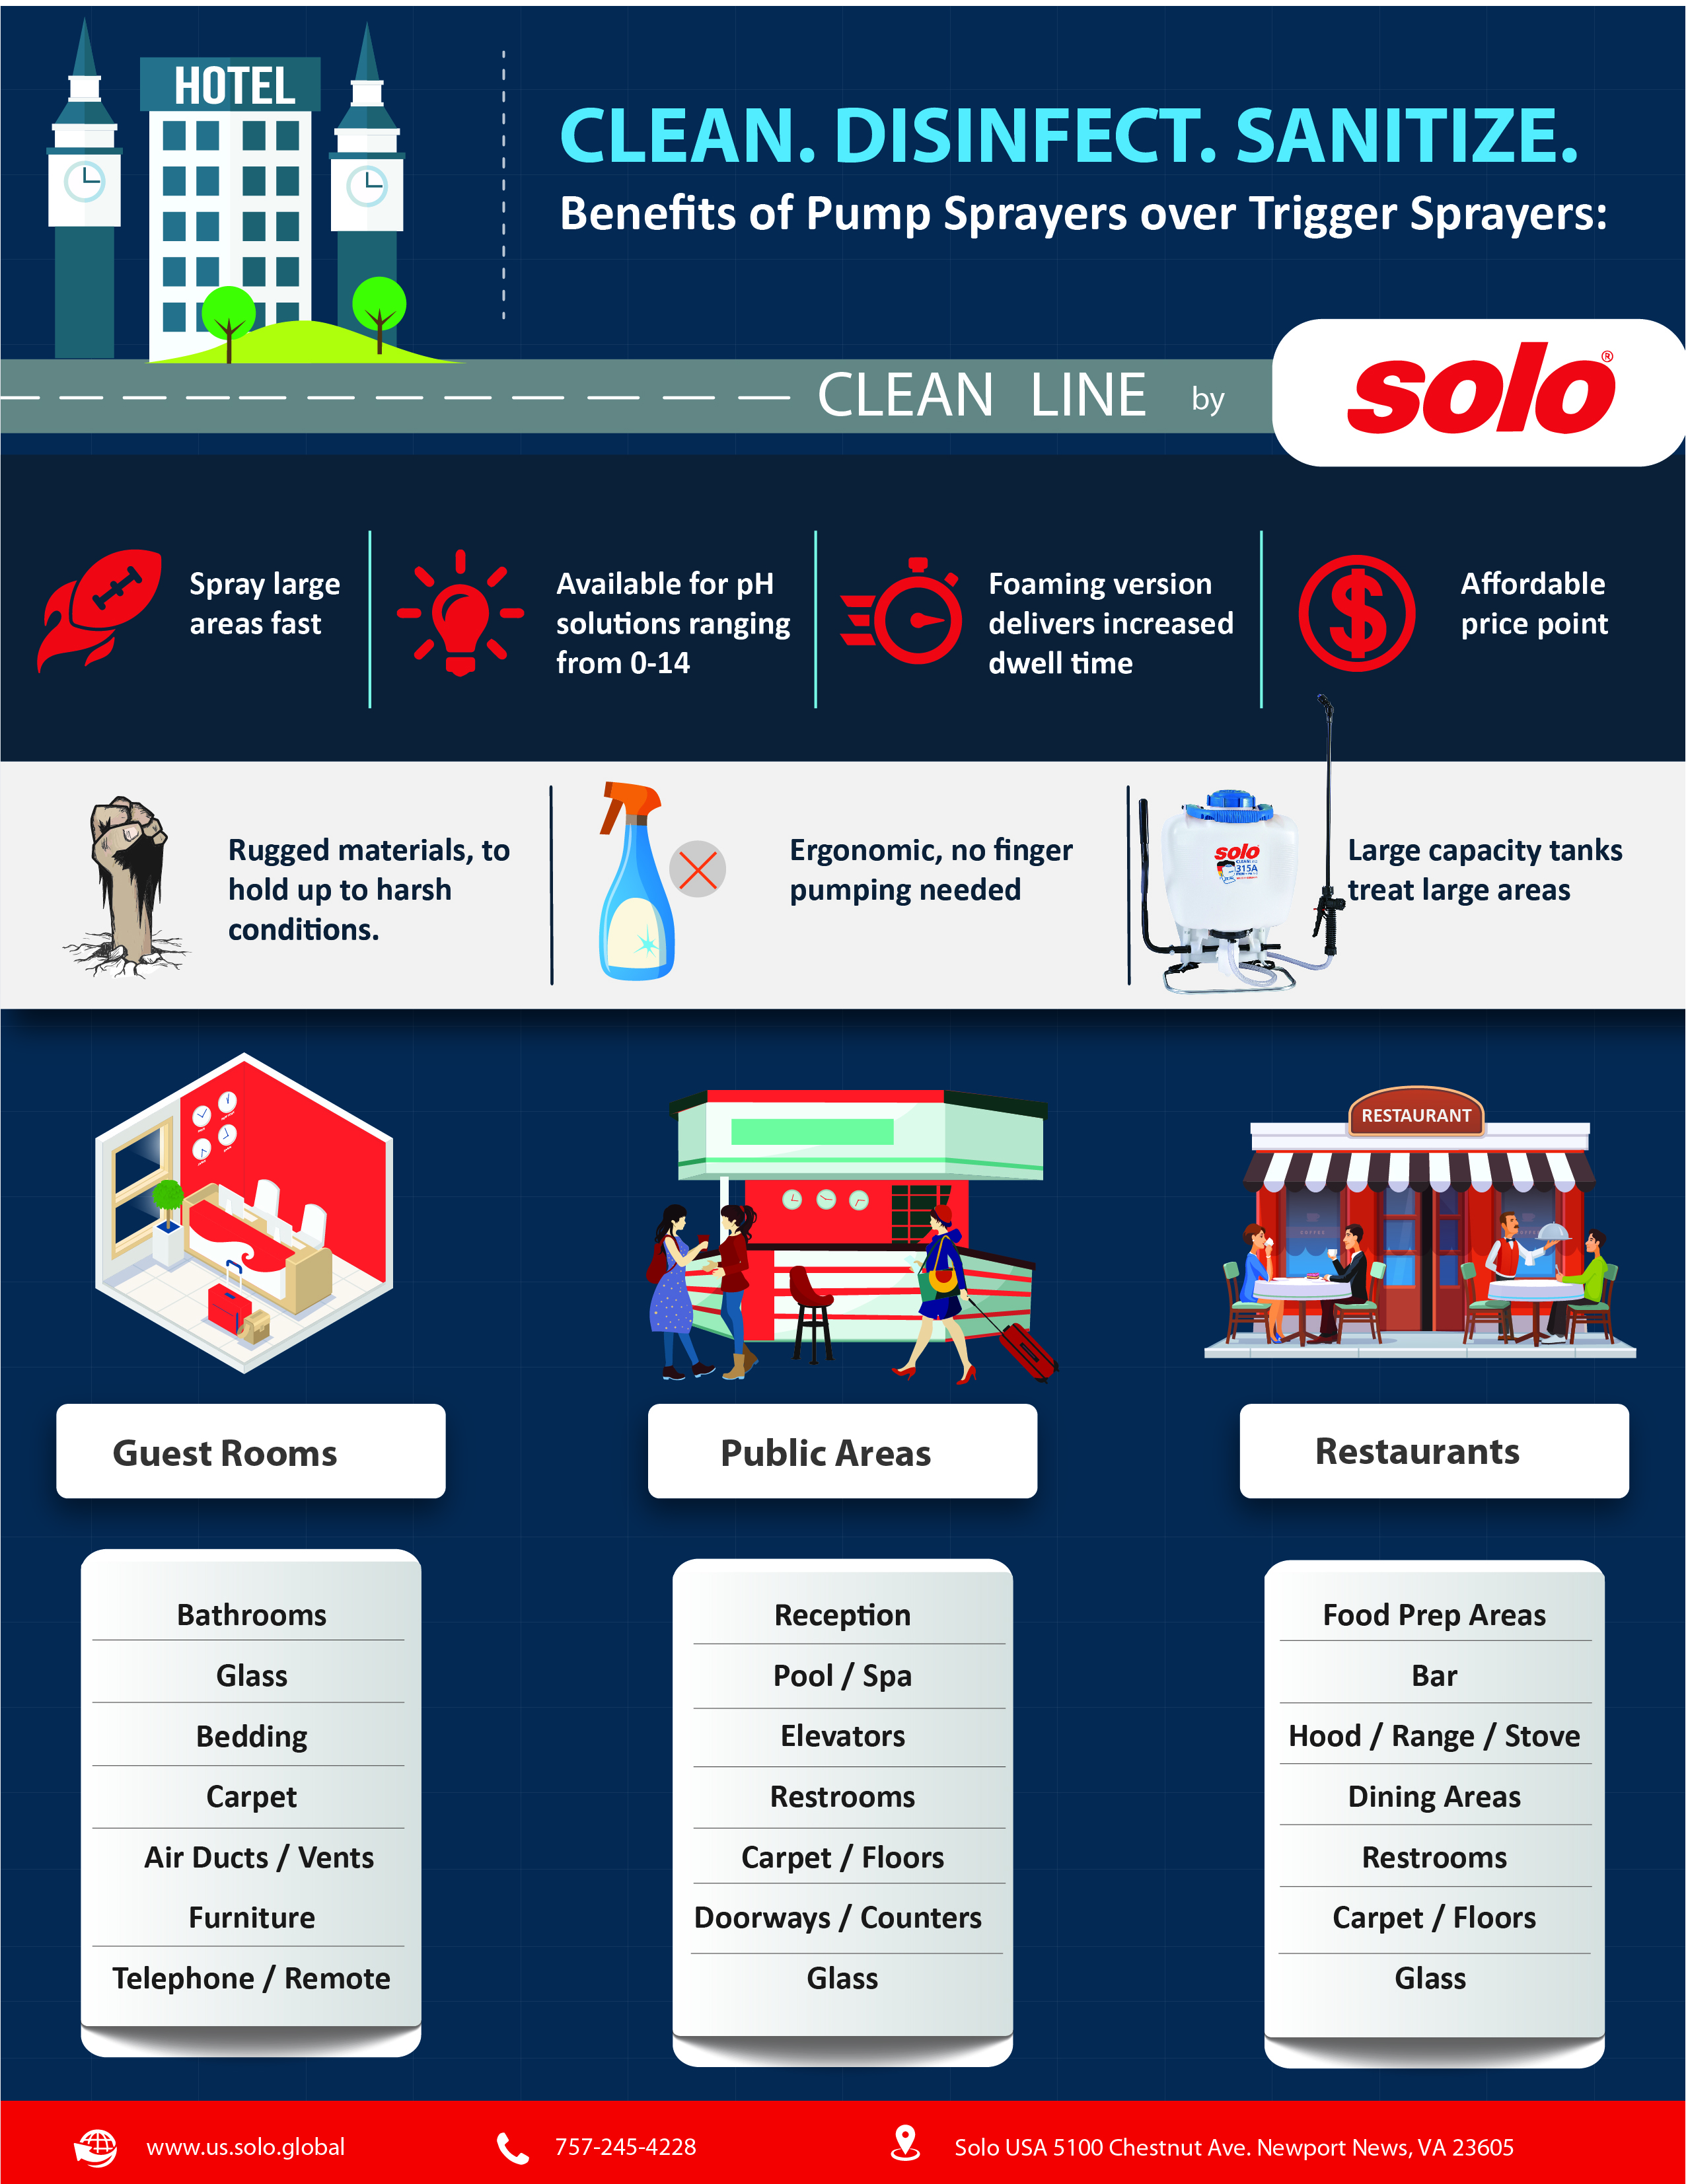 Use Solo CLEANLine sprayers to clean germs and bacteria in hotels and restaurants.